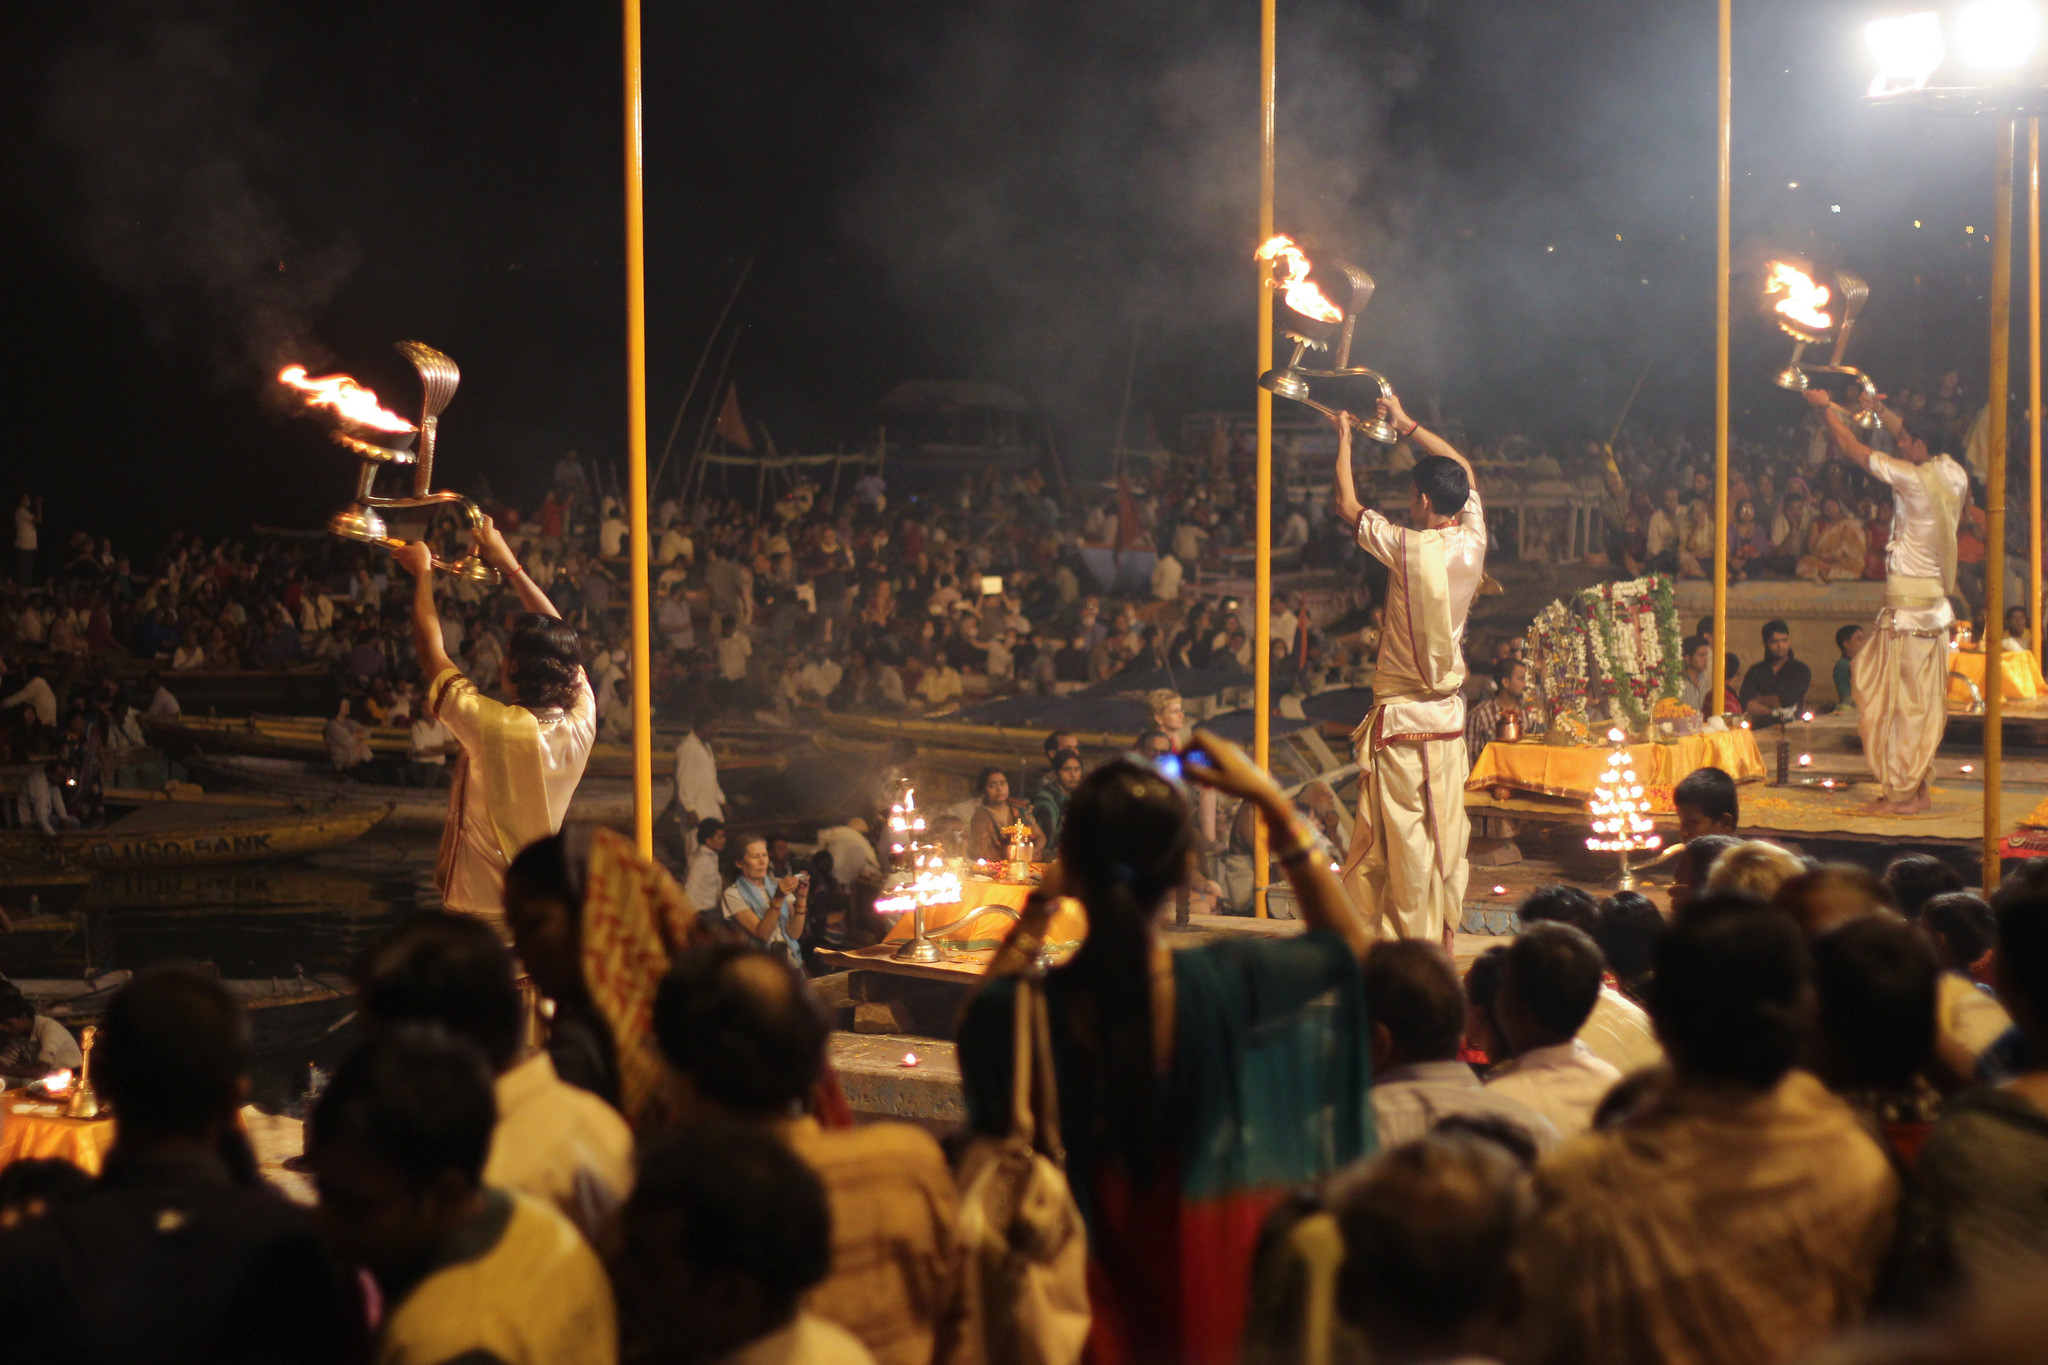 Varanasi during Diwali|©Matt Zimmerman/Flickr